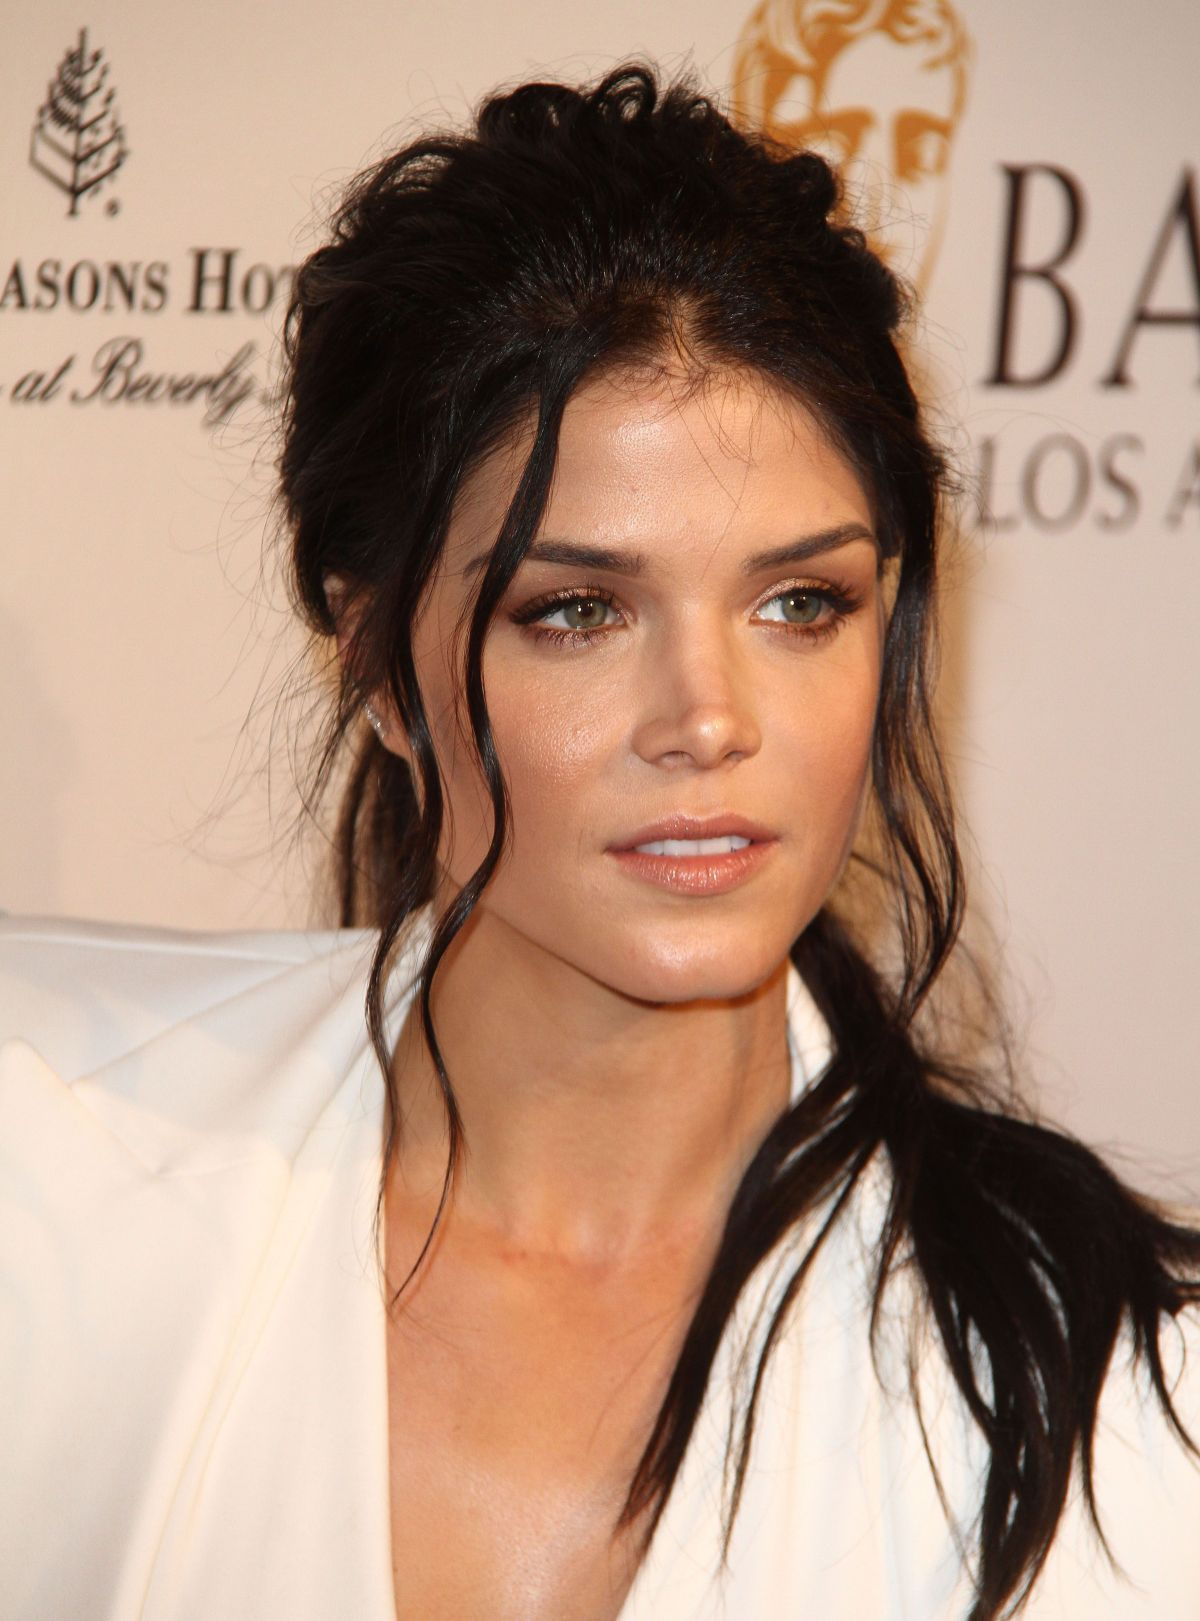 Actress Marie Avgeropoulos Wiki, Bio, Age, Height, Affairs